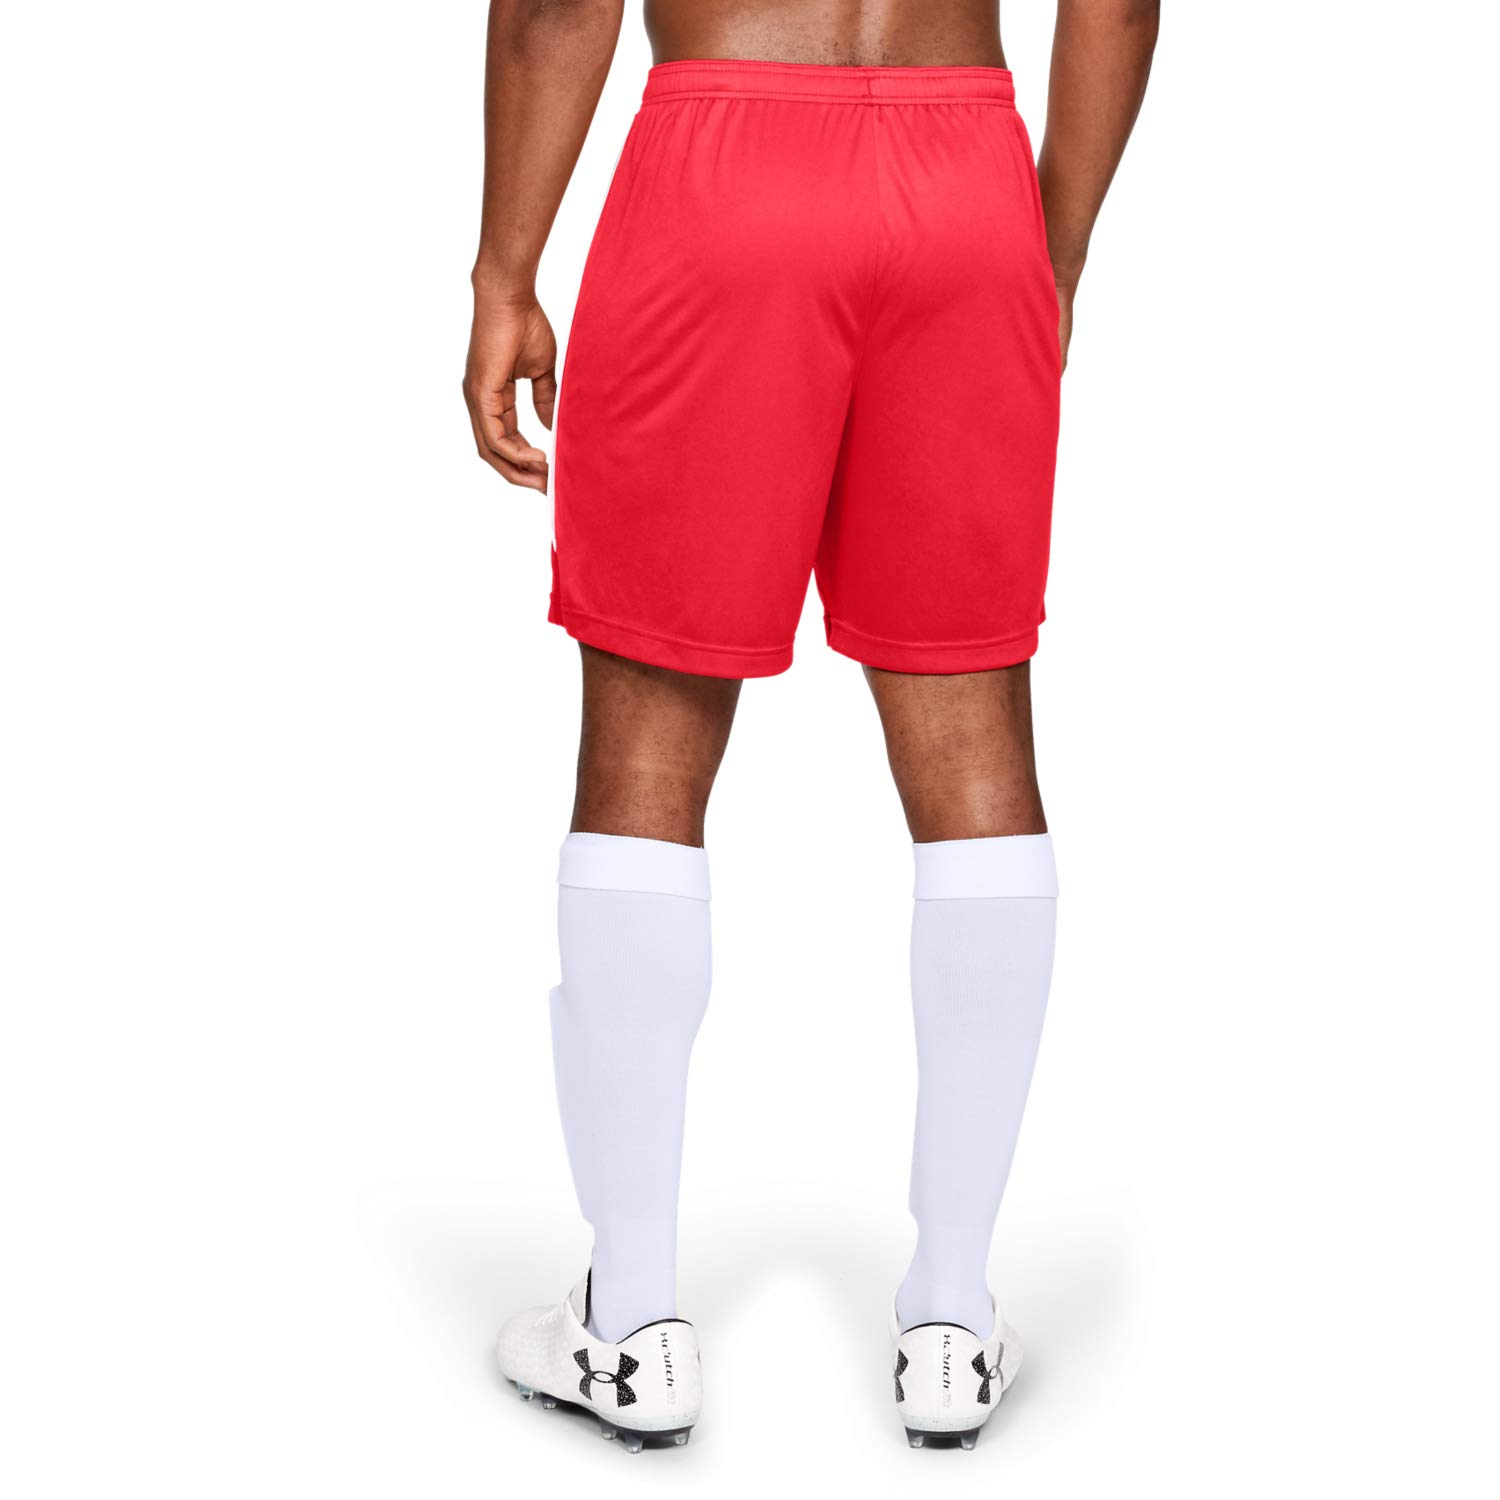 Under Armour Maquina 2.0 Shorts